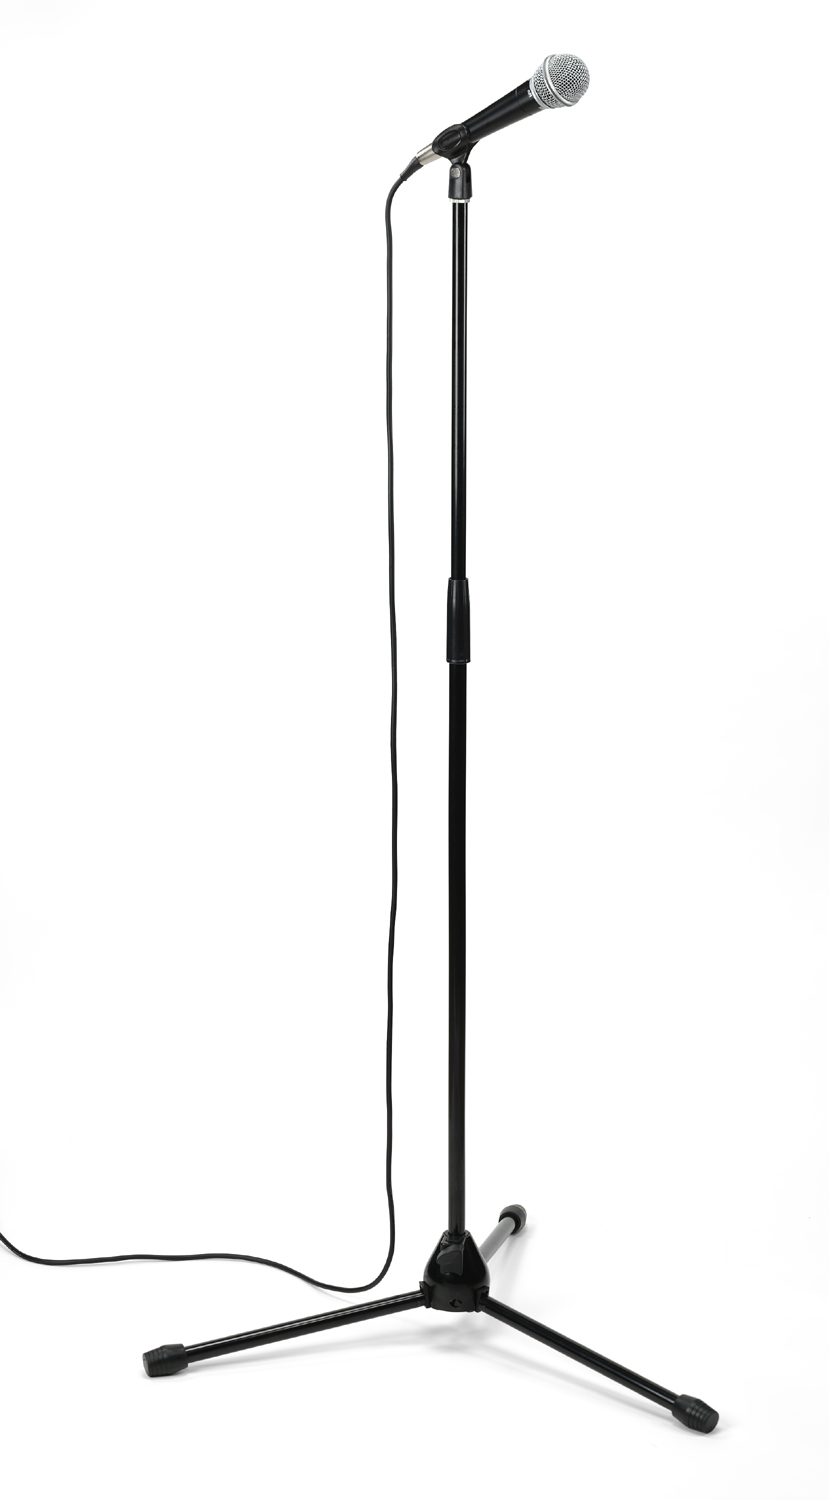 Microphone stand clipart picture transparent stock Microphone Stand Clip Art | Clipart Panda - Free Clipart Images picture transparent stock